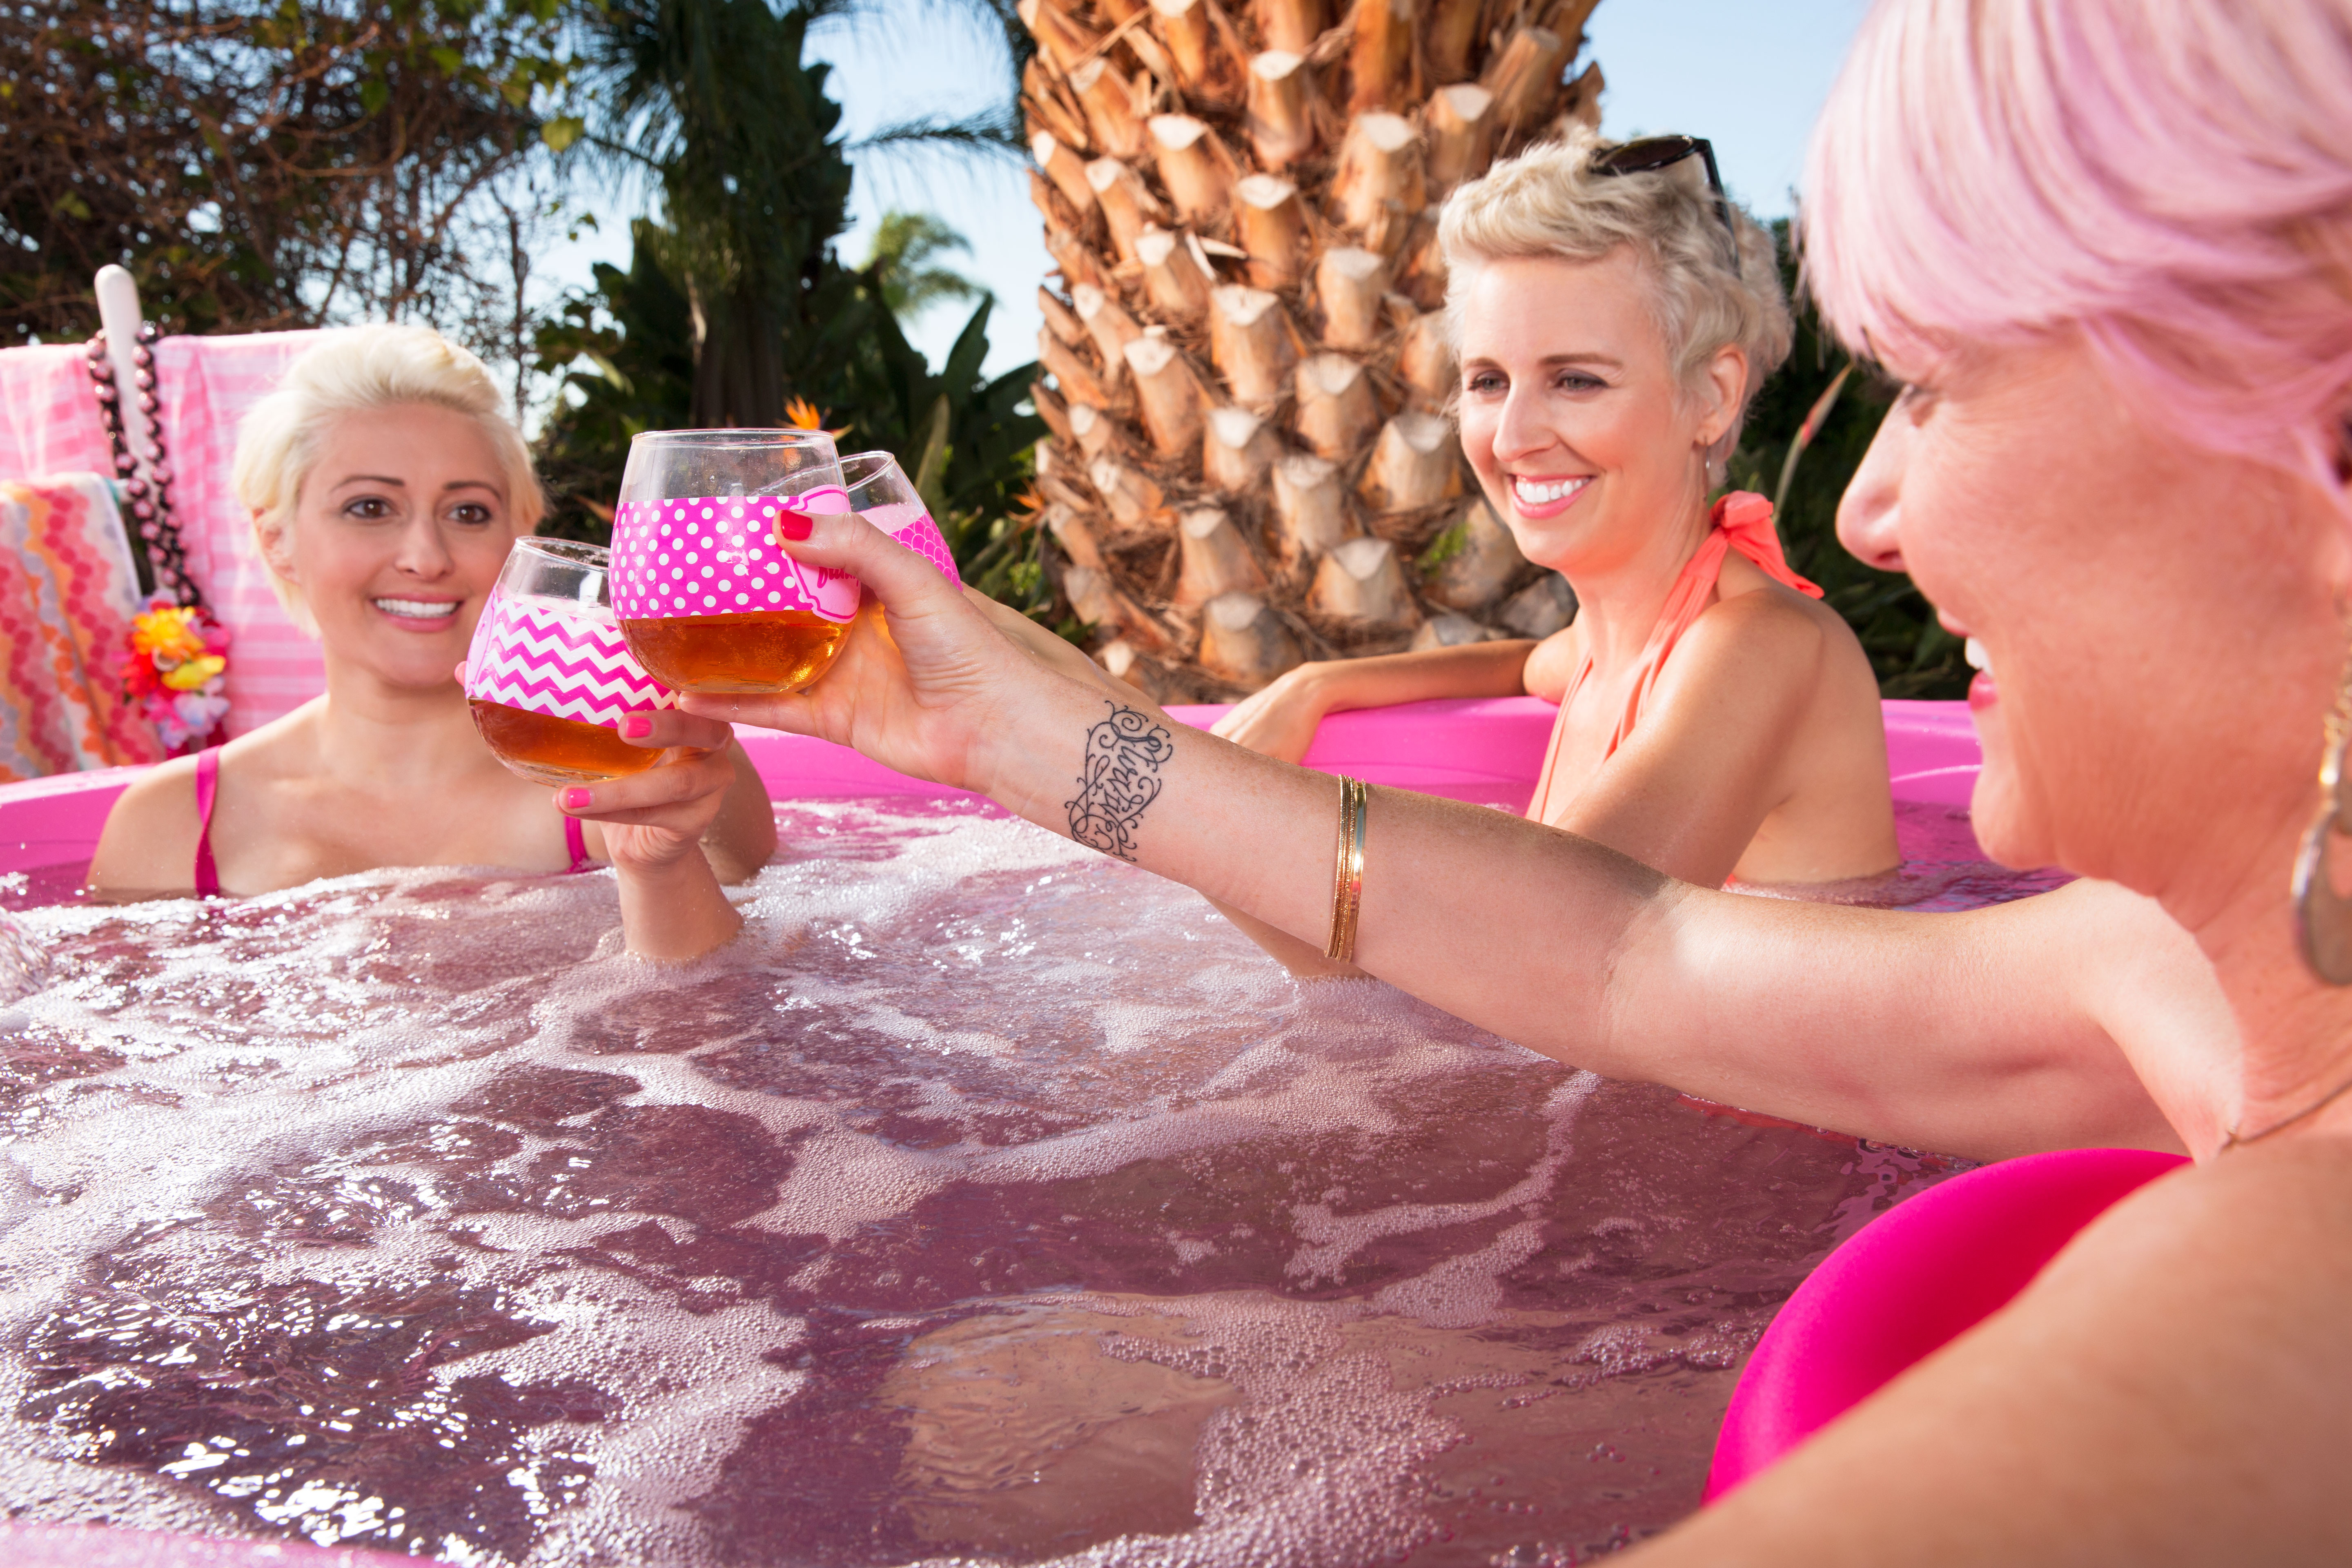 Enter To Win a Hot Tub For $10